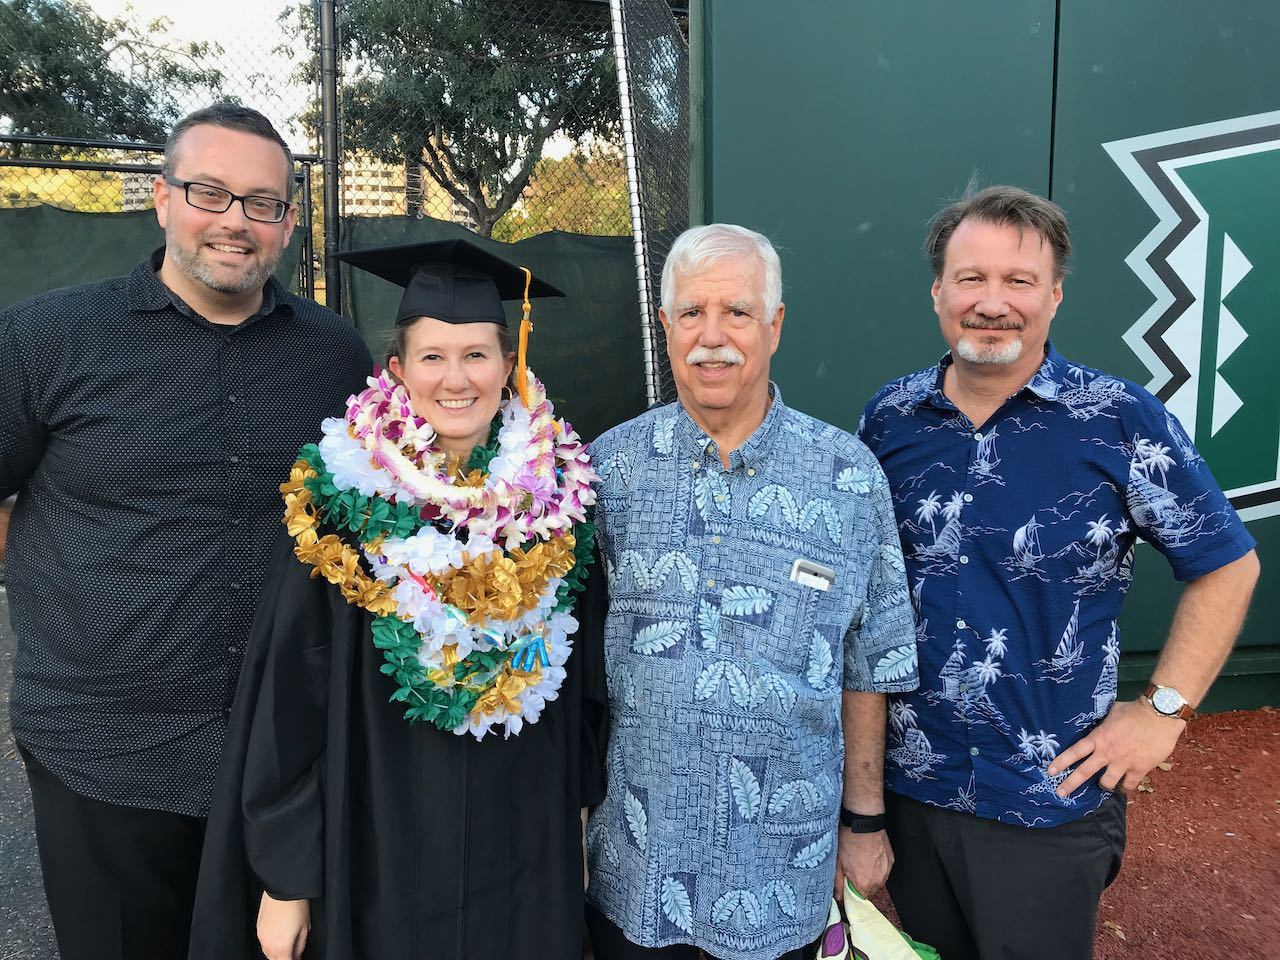 Chelsea Nichols with Dr. Kramer and her family @ Summer Commencement 2019